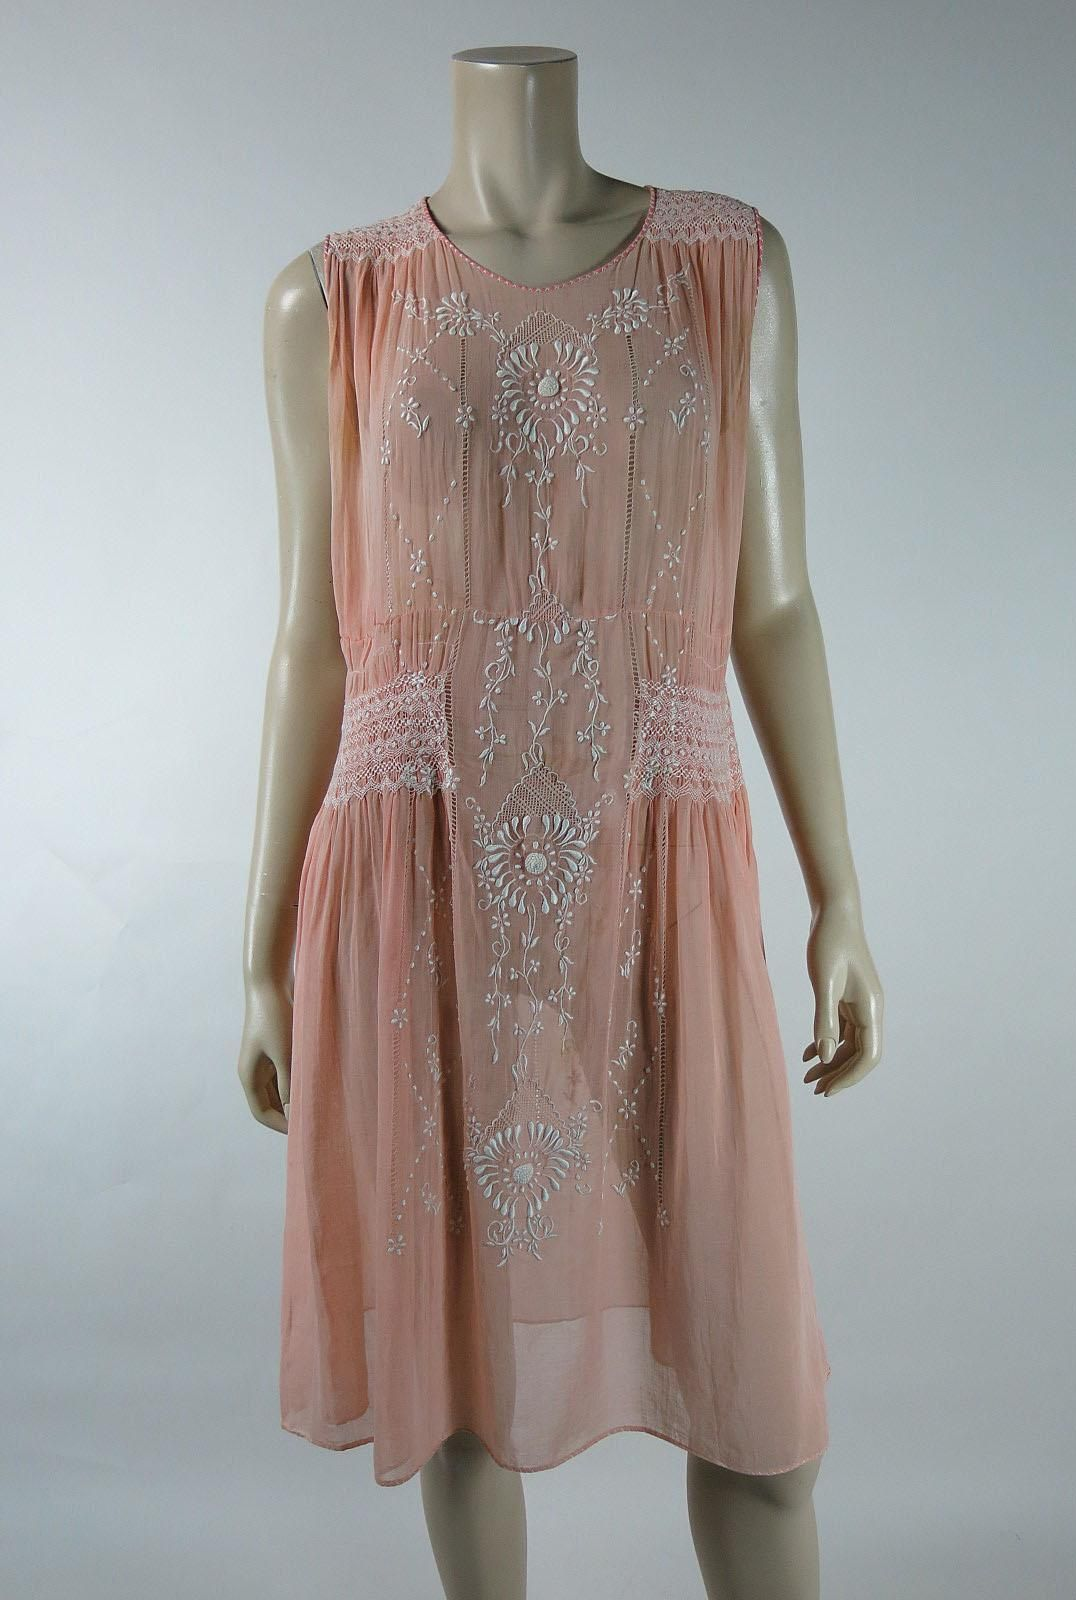 1920's vintage Hungarian gauzy pink cotton peasant style day dress with smocking, drawnwork and hand-embroidery. These pretty, exquisitely feminine